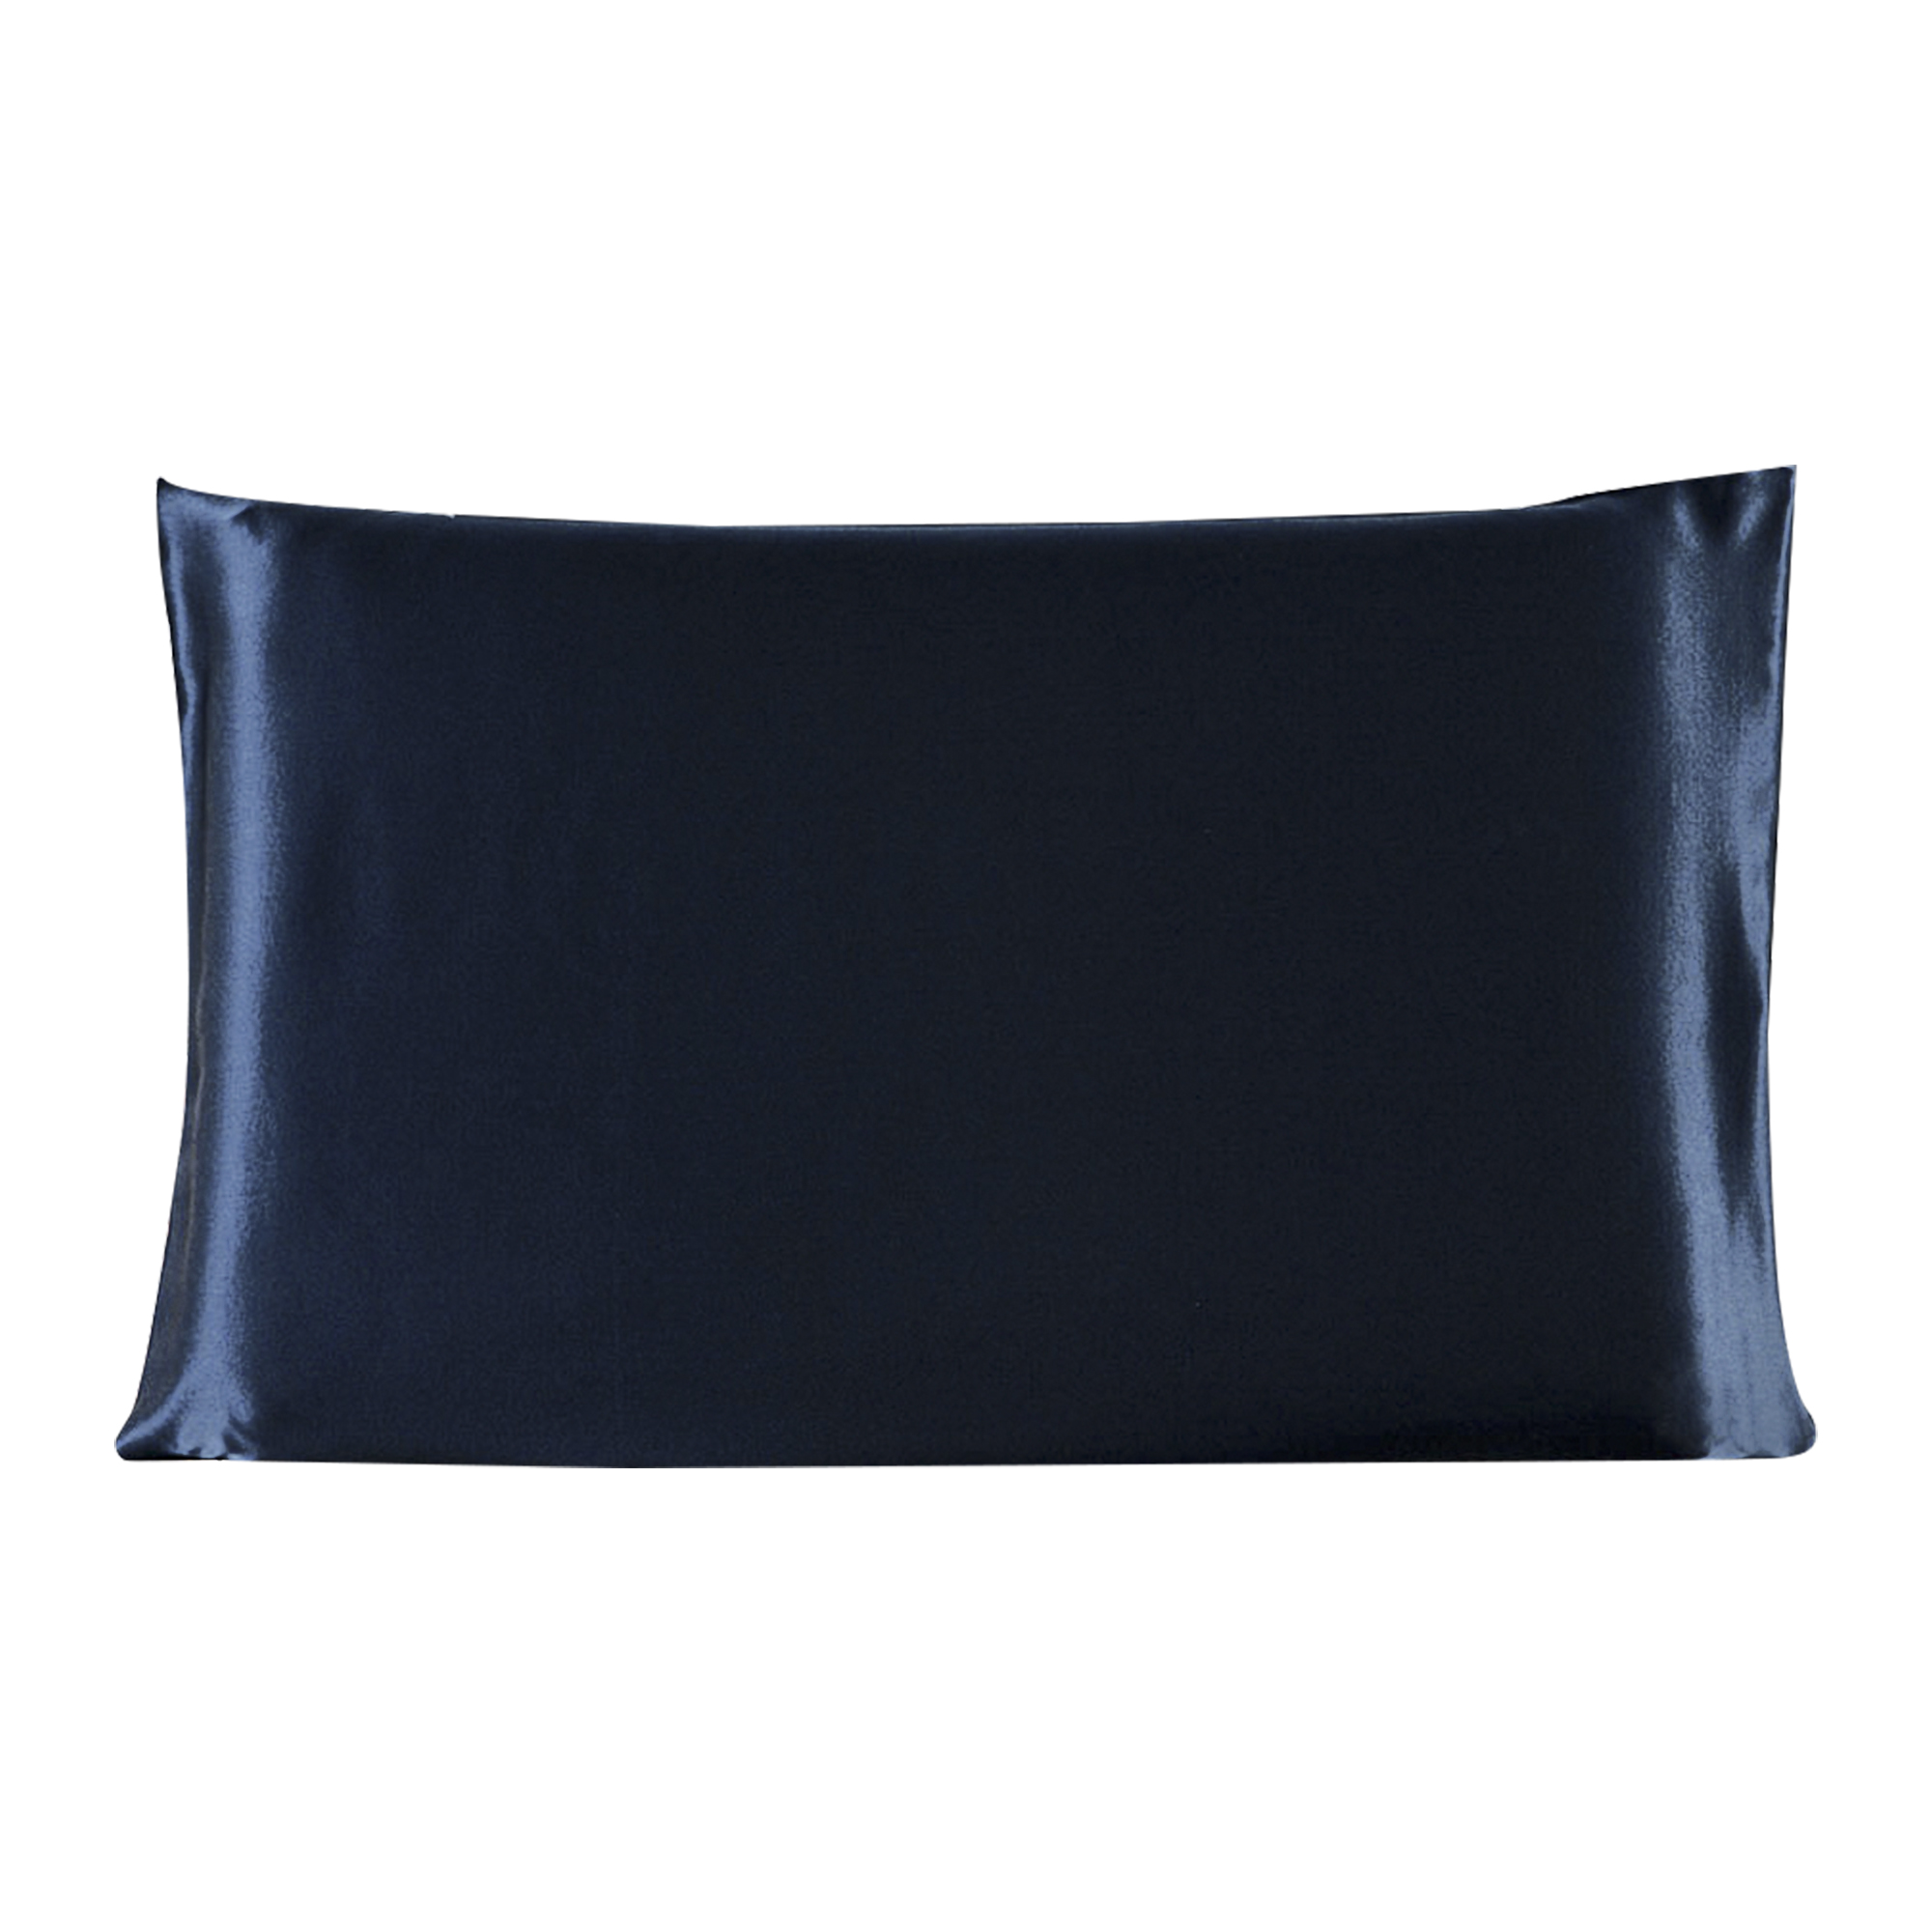 100% Mulberry Silk Fabric Pillow Case Cover Royal Blue /Travel Size